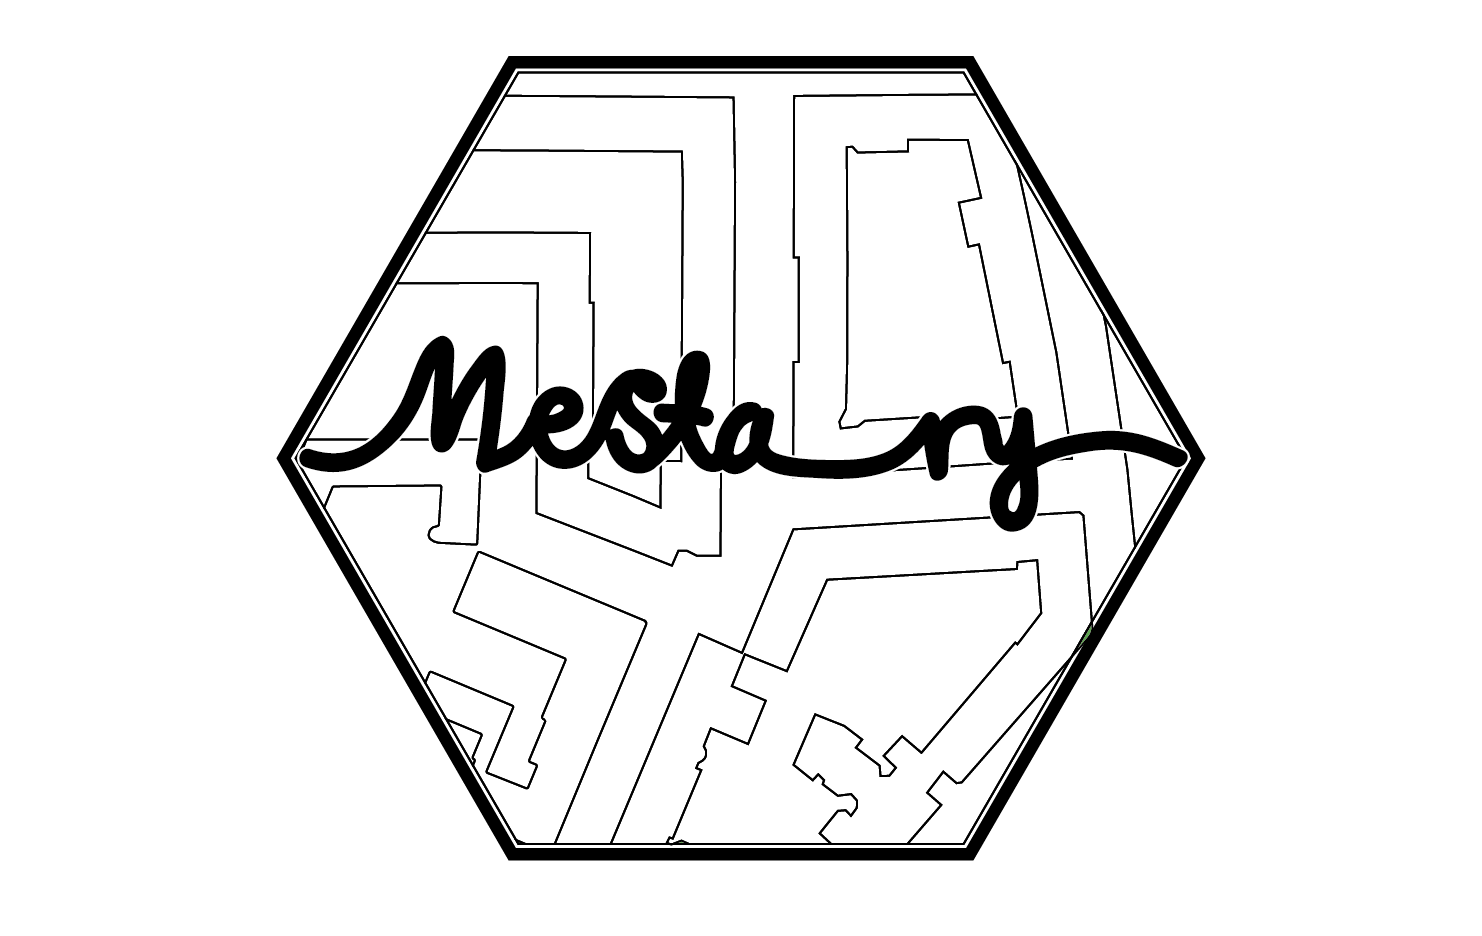 Logo of Mesta ry, the student organization of USP